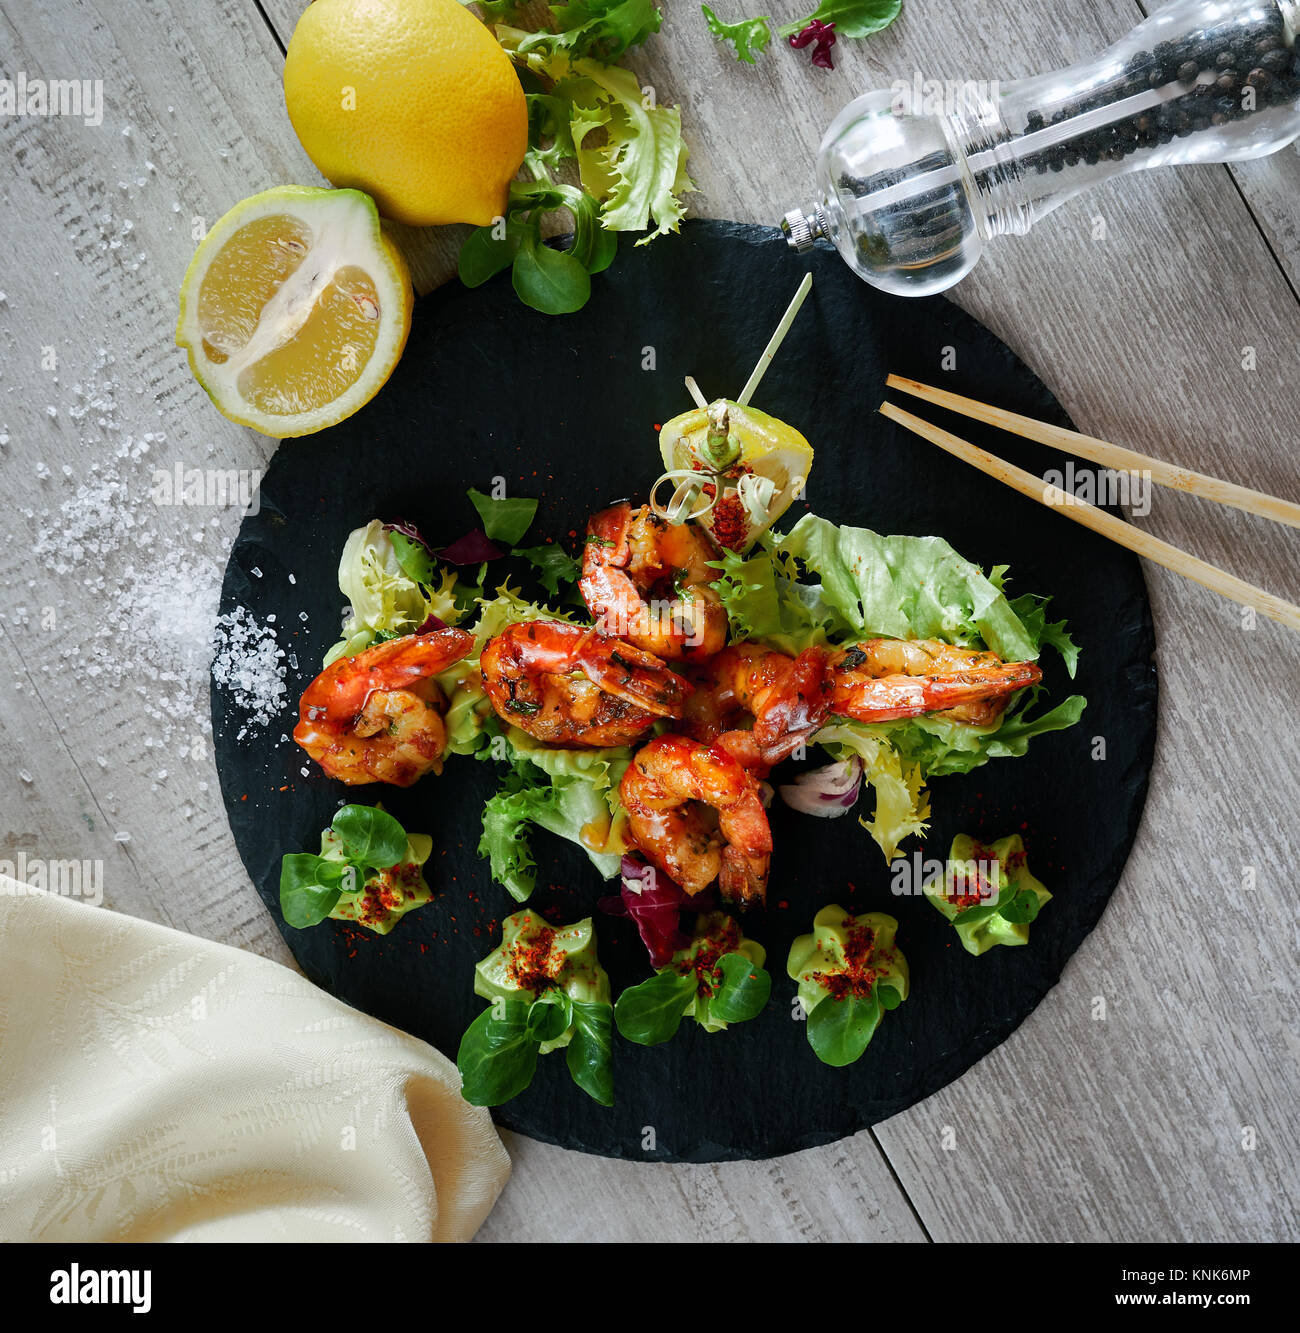 Barbecue grilled prawns with guacamole salad - Stock Image